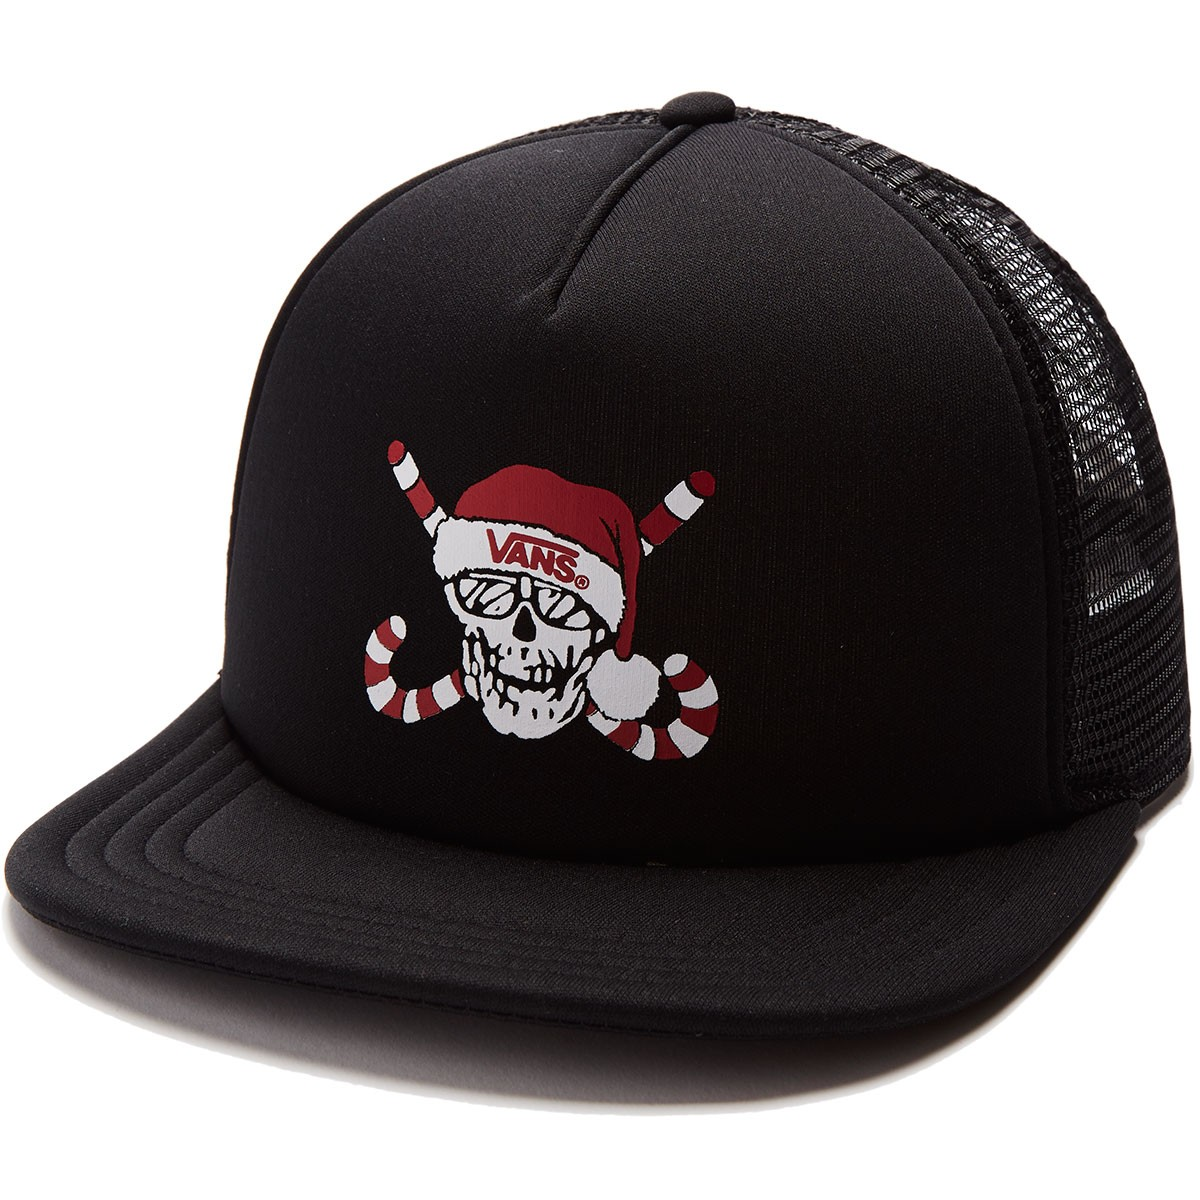 9711e7dab37 Vans Holiday Trucker Hat - Black